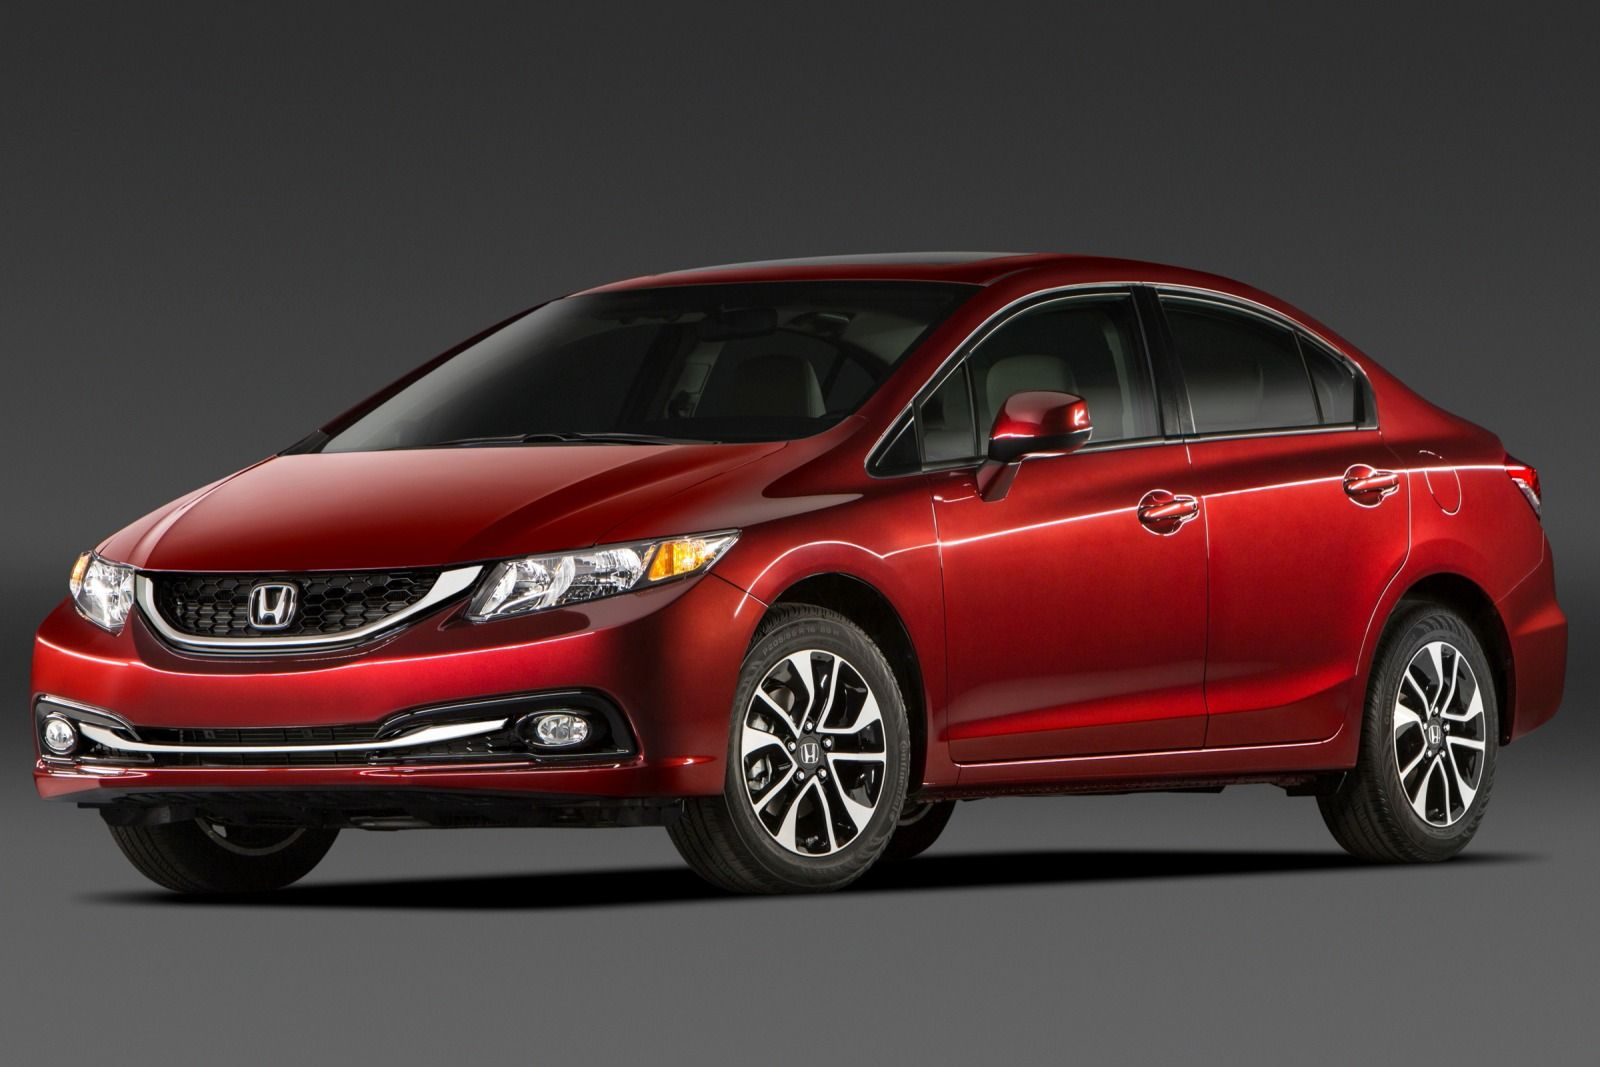 2015 Honda Civic #2